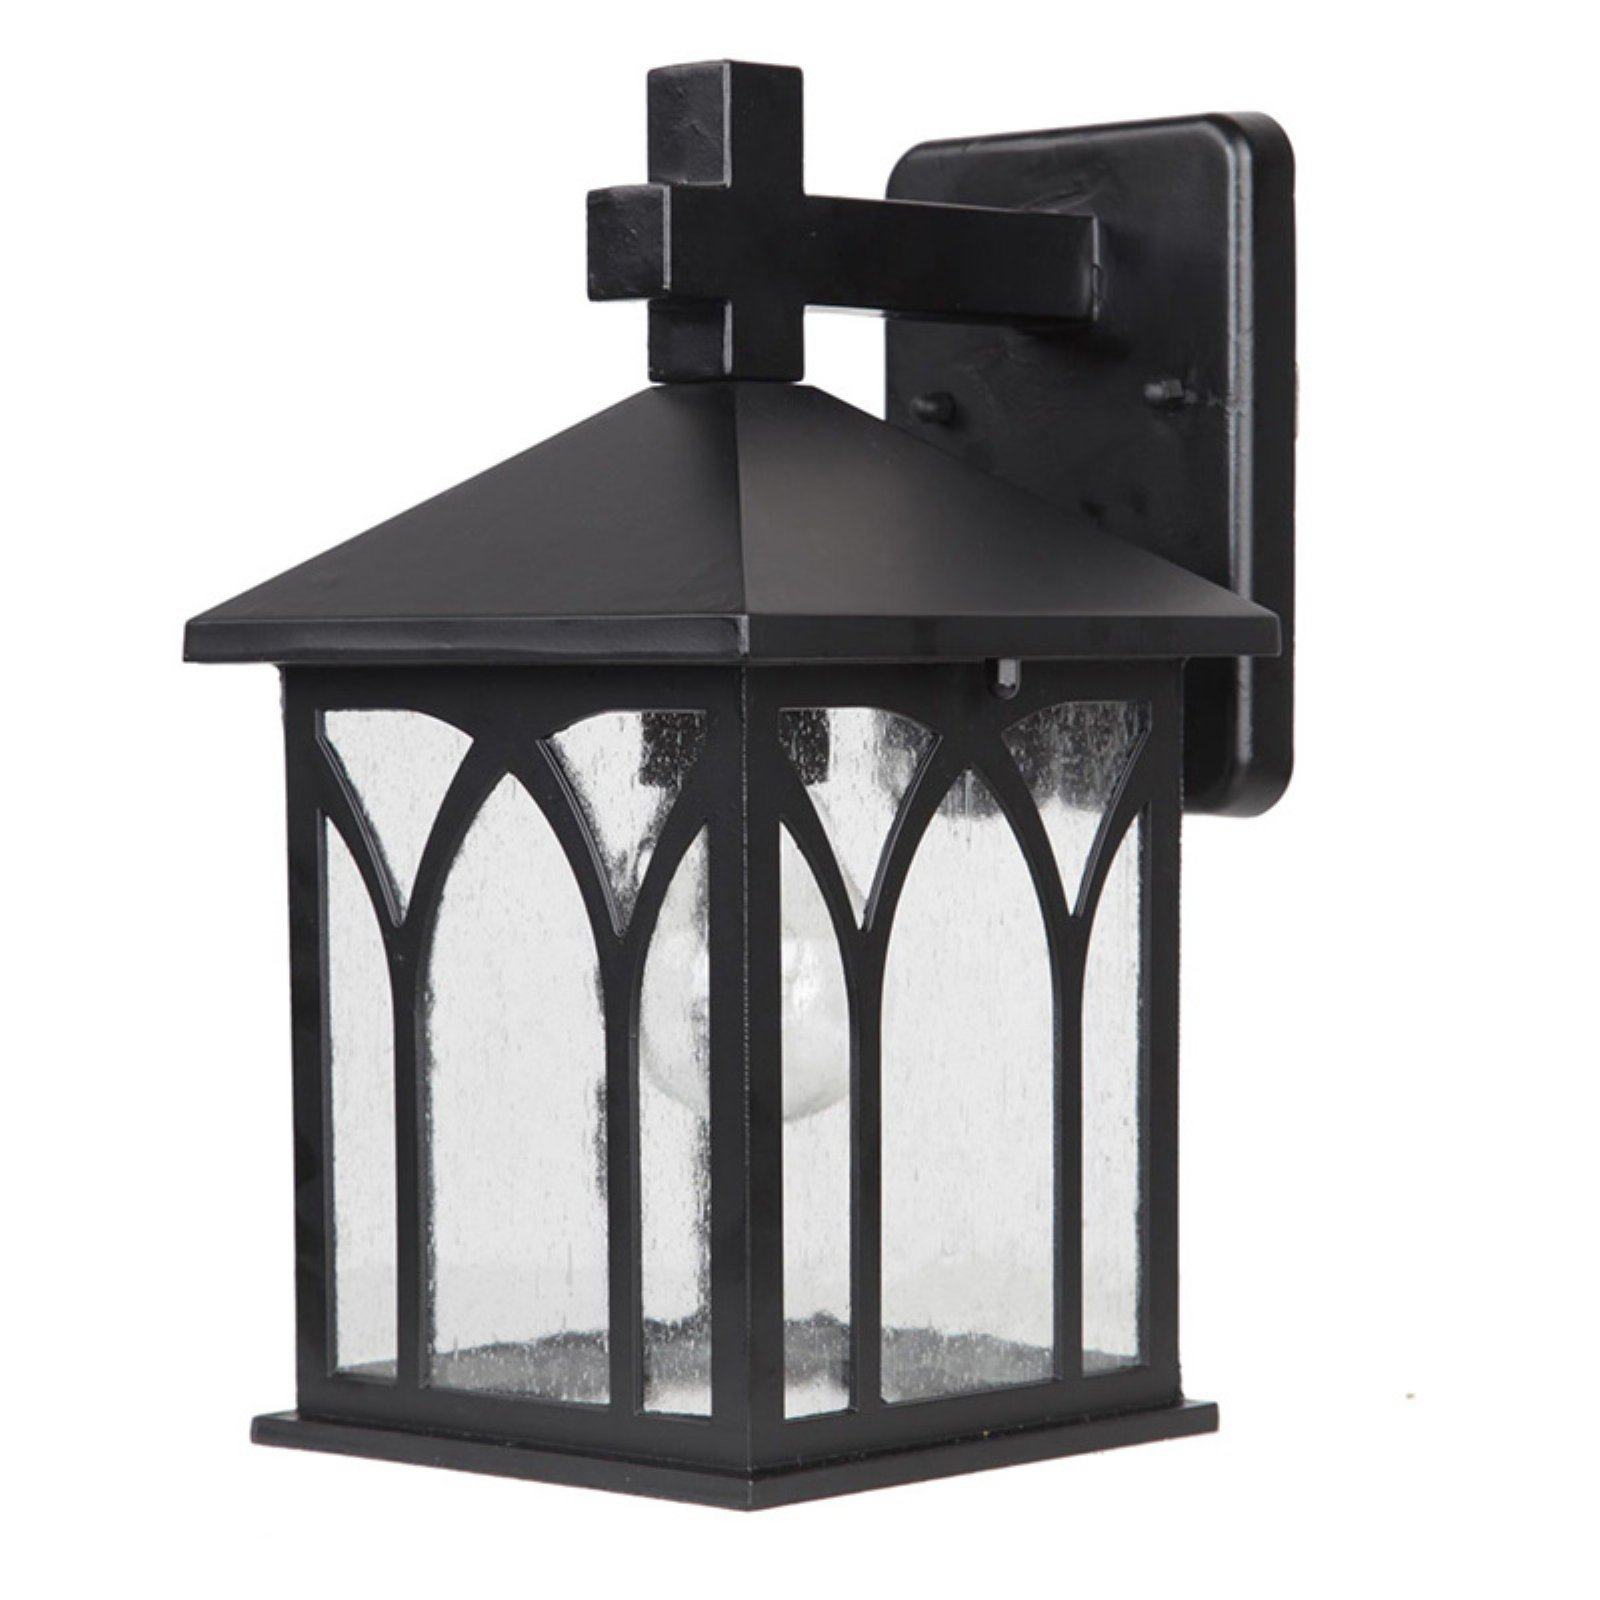 Acclaim Lighting Builders Choice 6.5 in. Outdoor Wall Mount Light Fixture